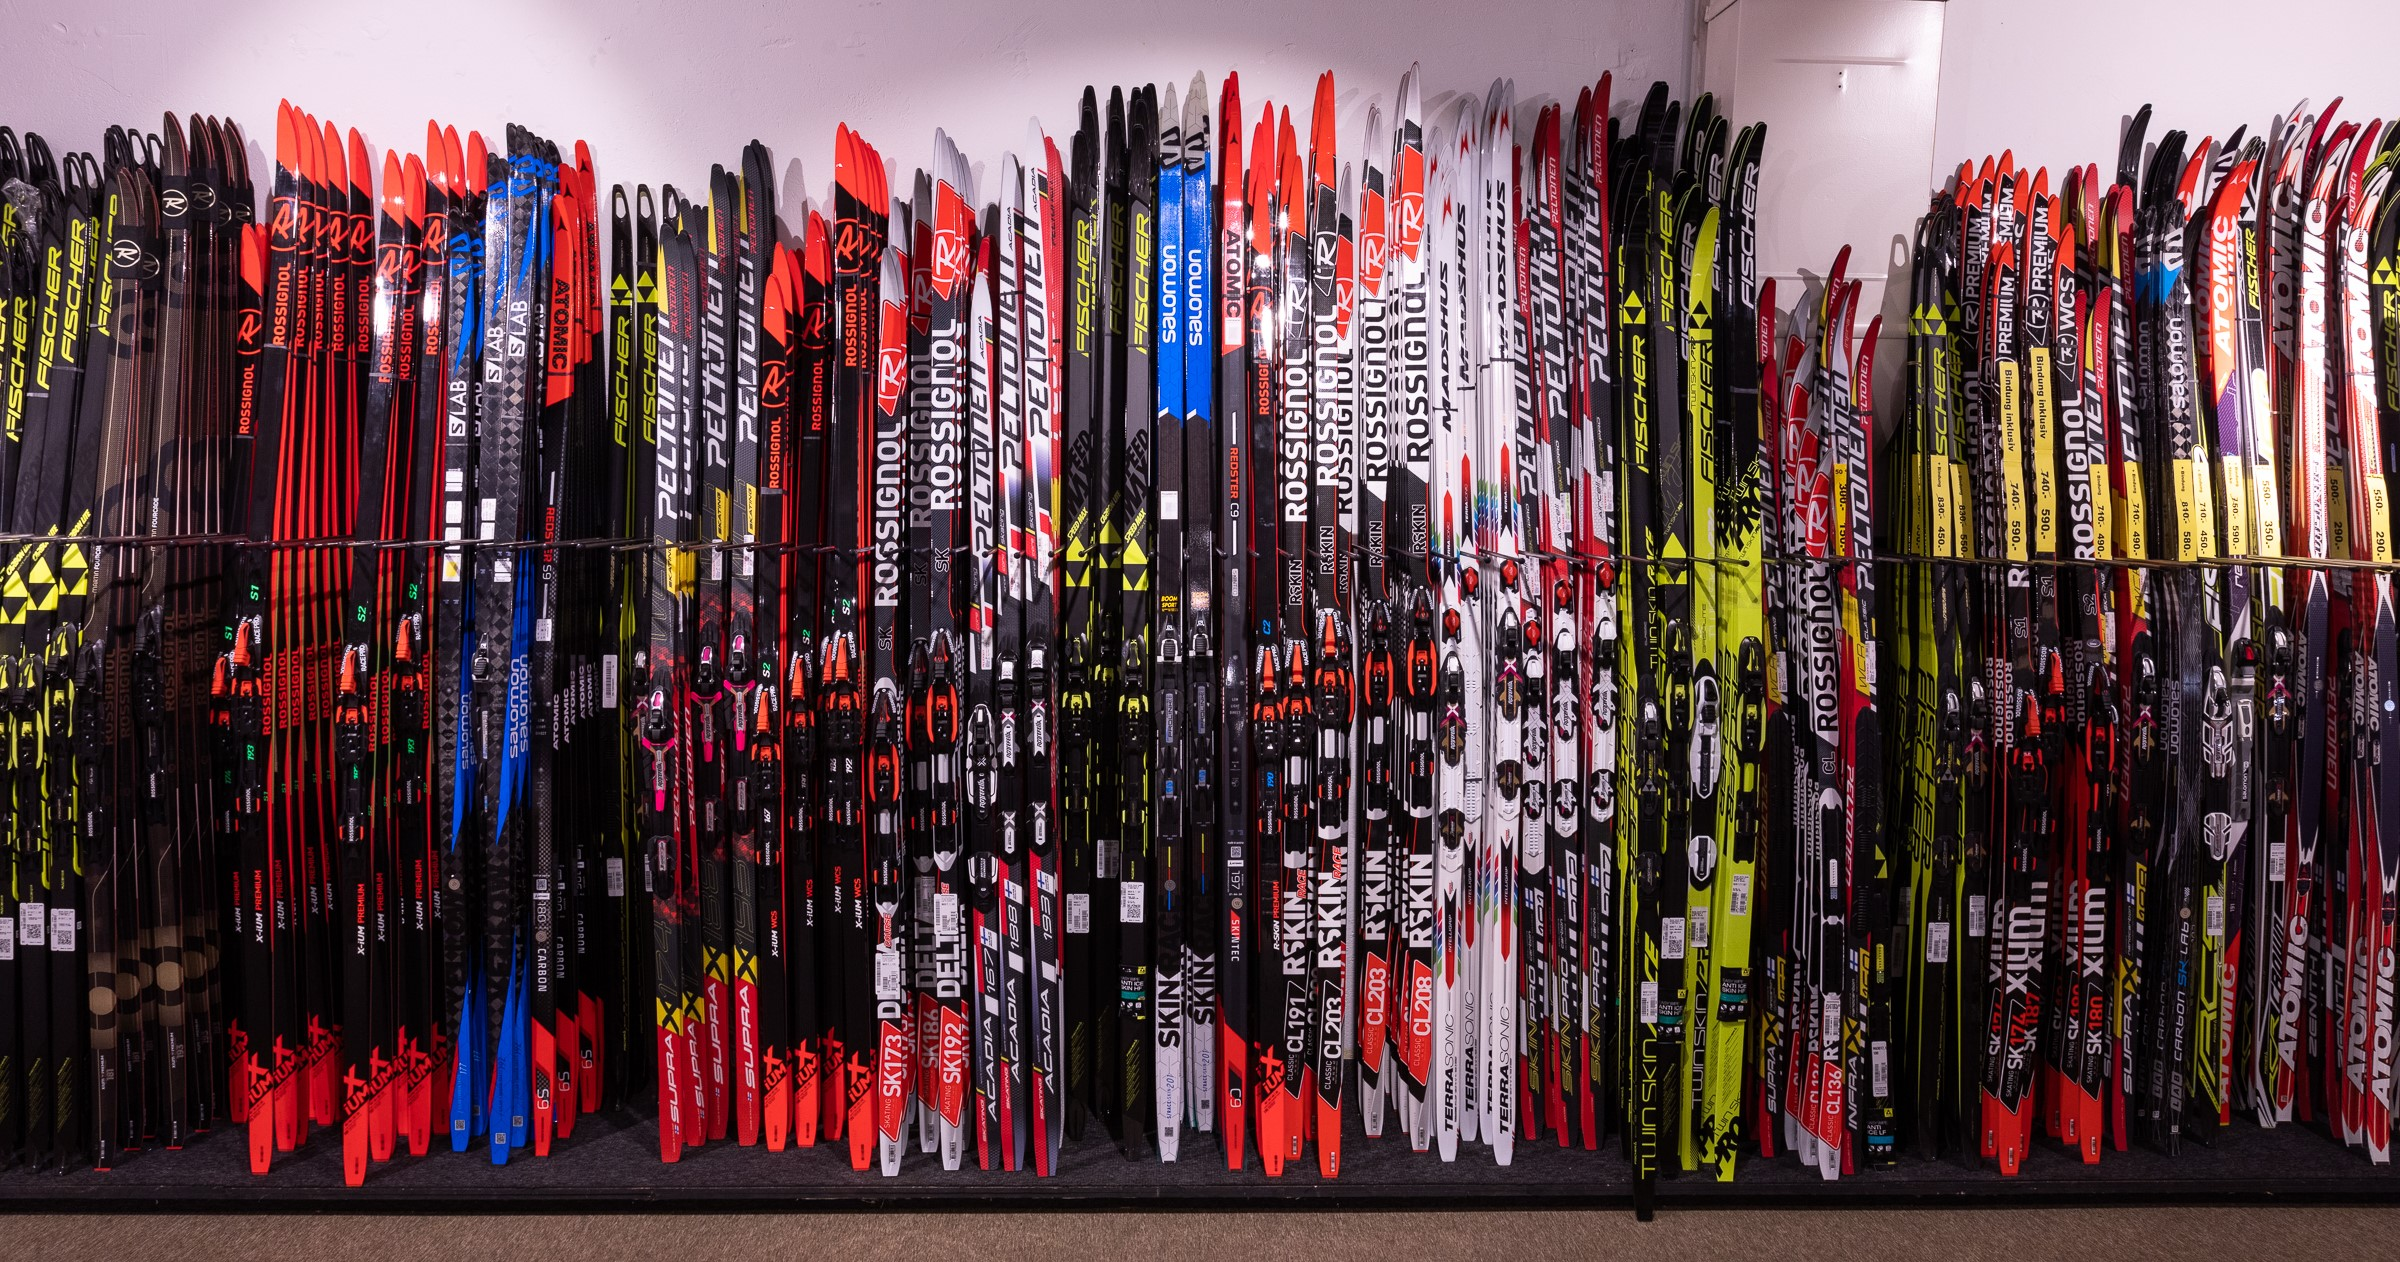 Cross-country ski rental stations